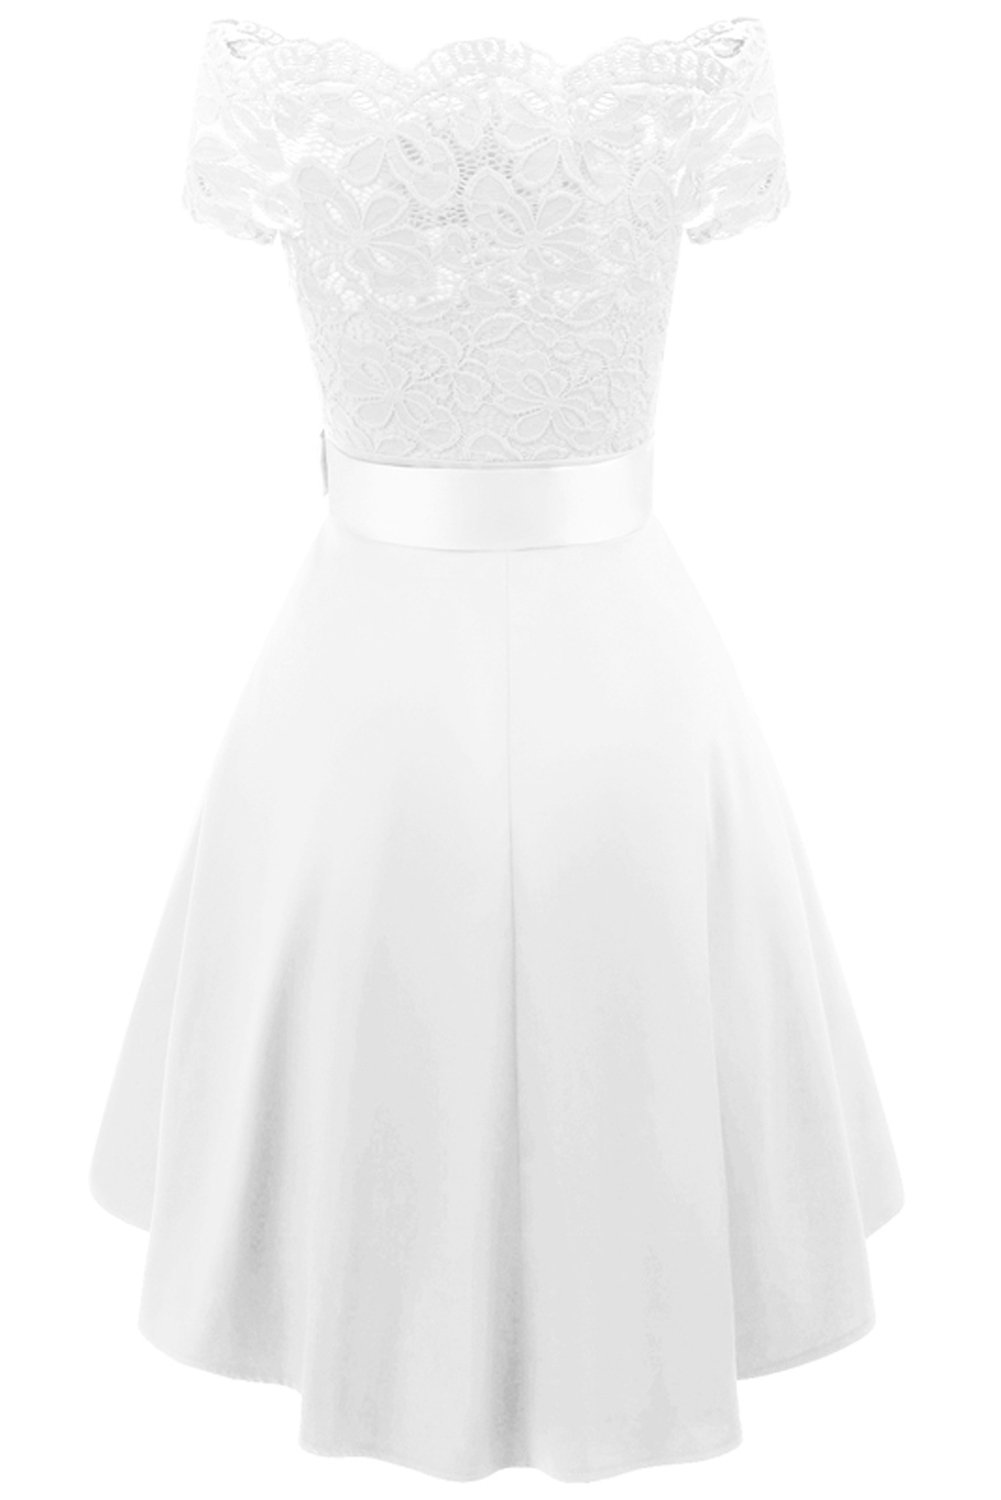 MILANO BRIDE Women's Vintage Floral Lace Short Sleeves Boat Neck Cocktail Formal Swing Dress-L-White by MILANO BRIDE (Image #2)